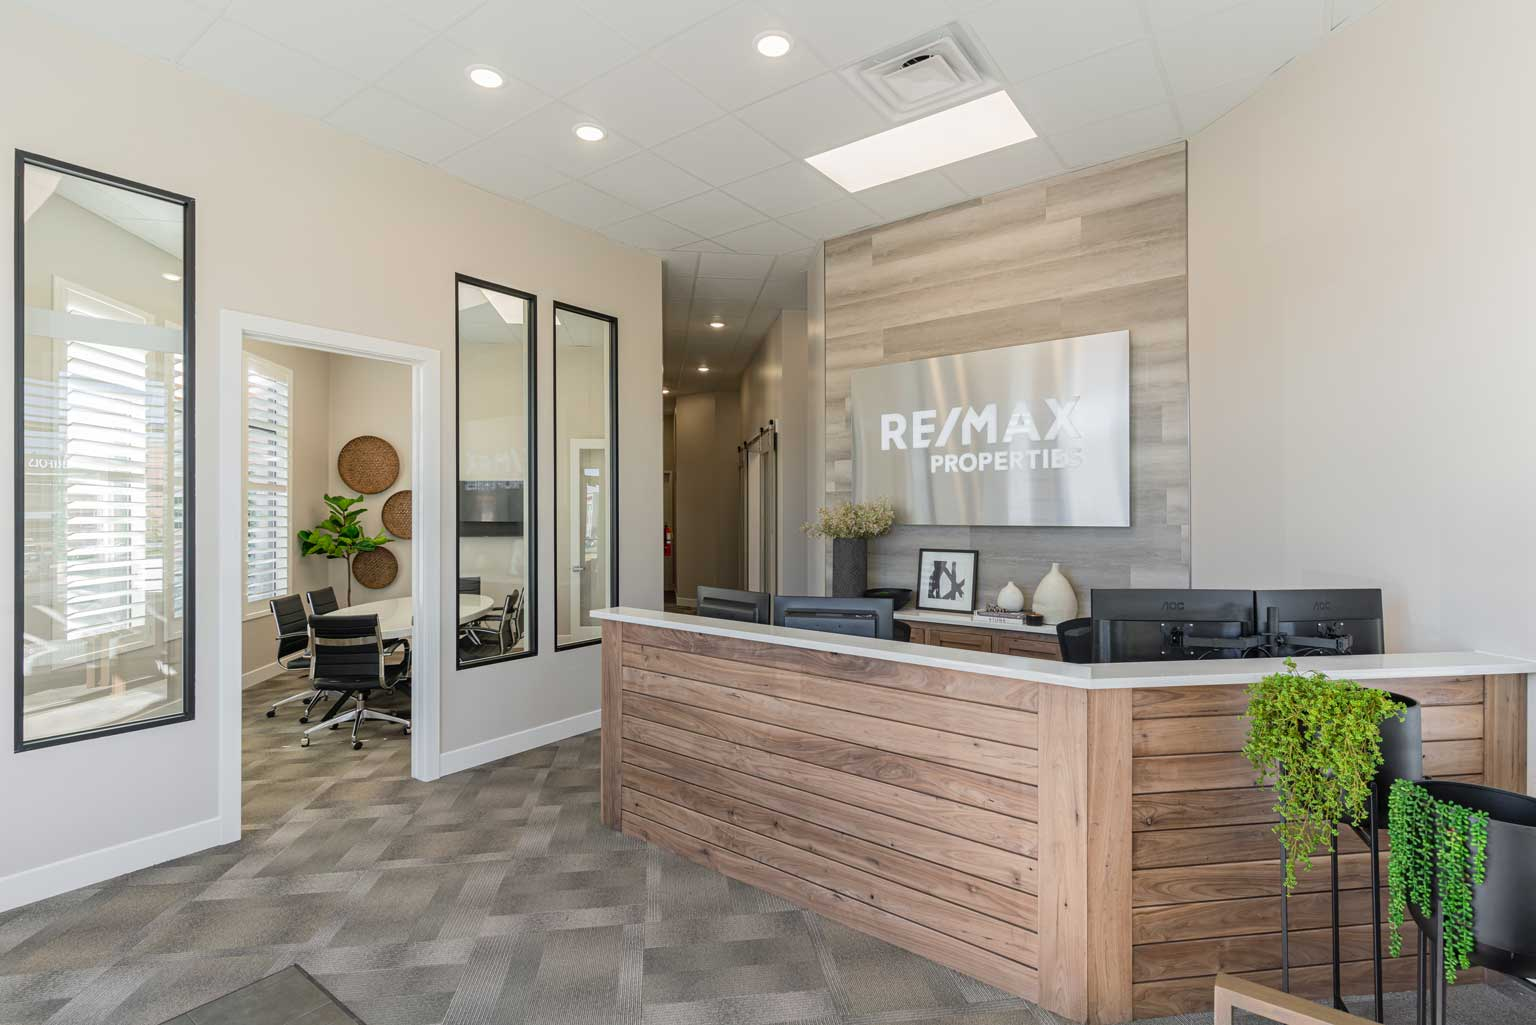 Our New Re/Max Office Is Now Open!